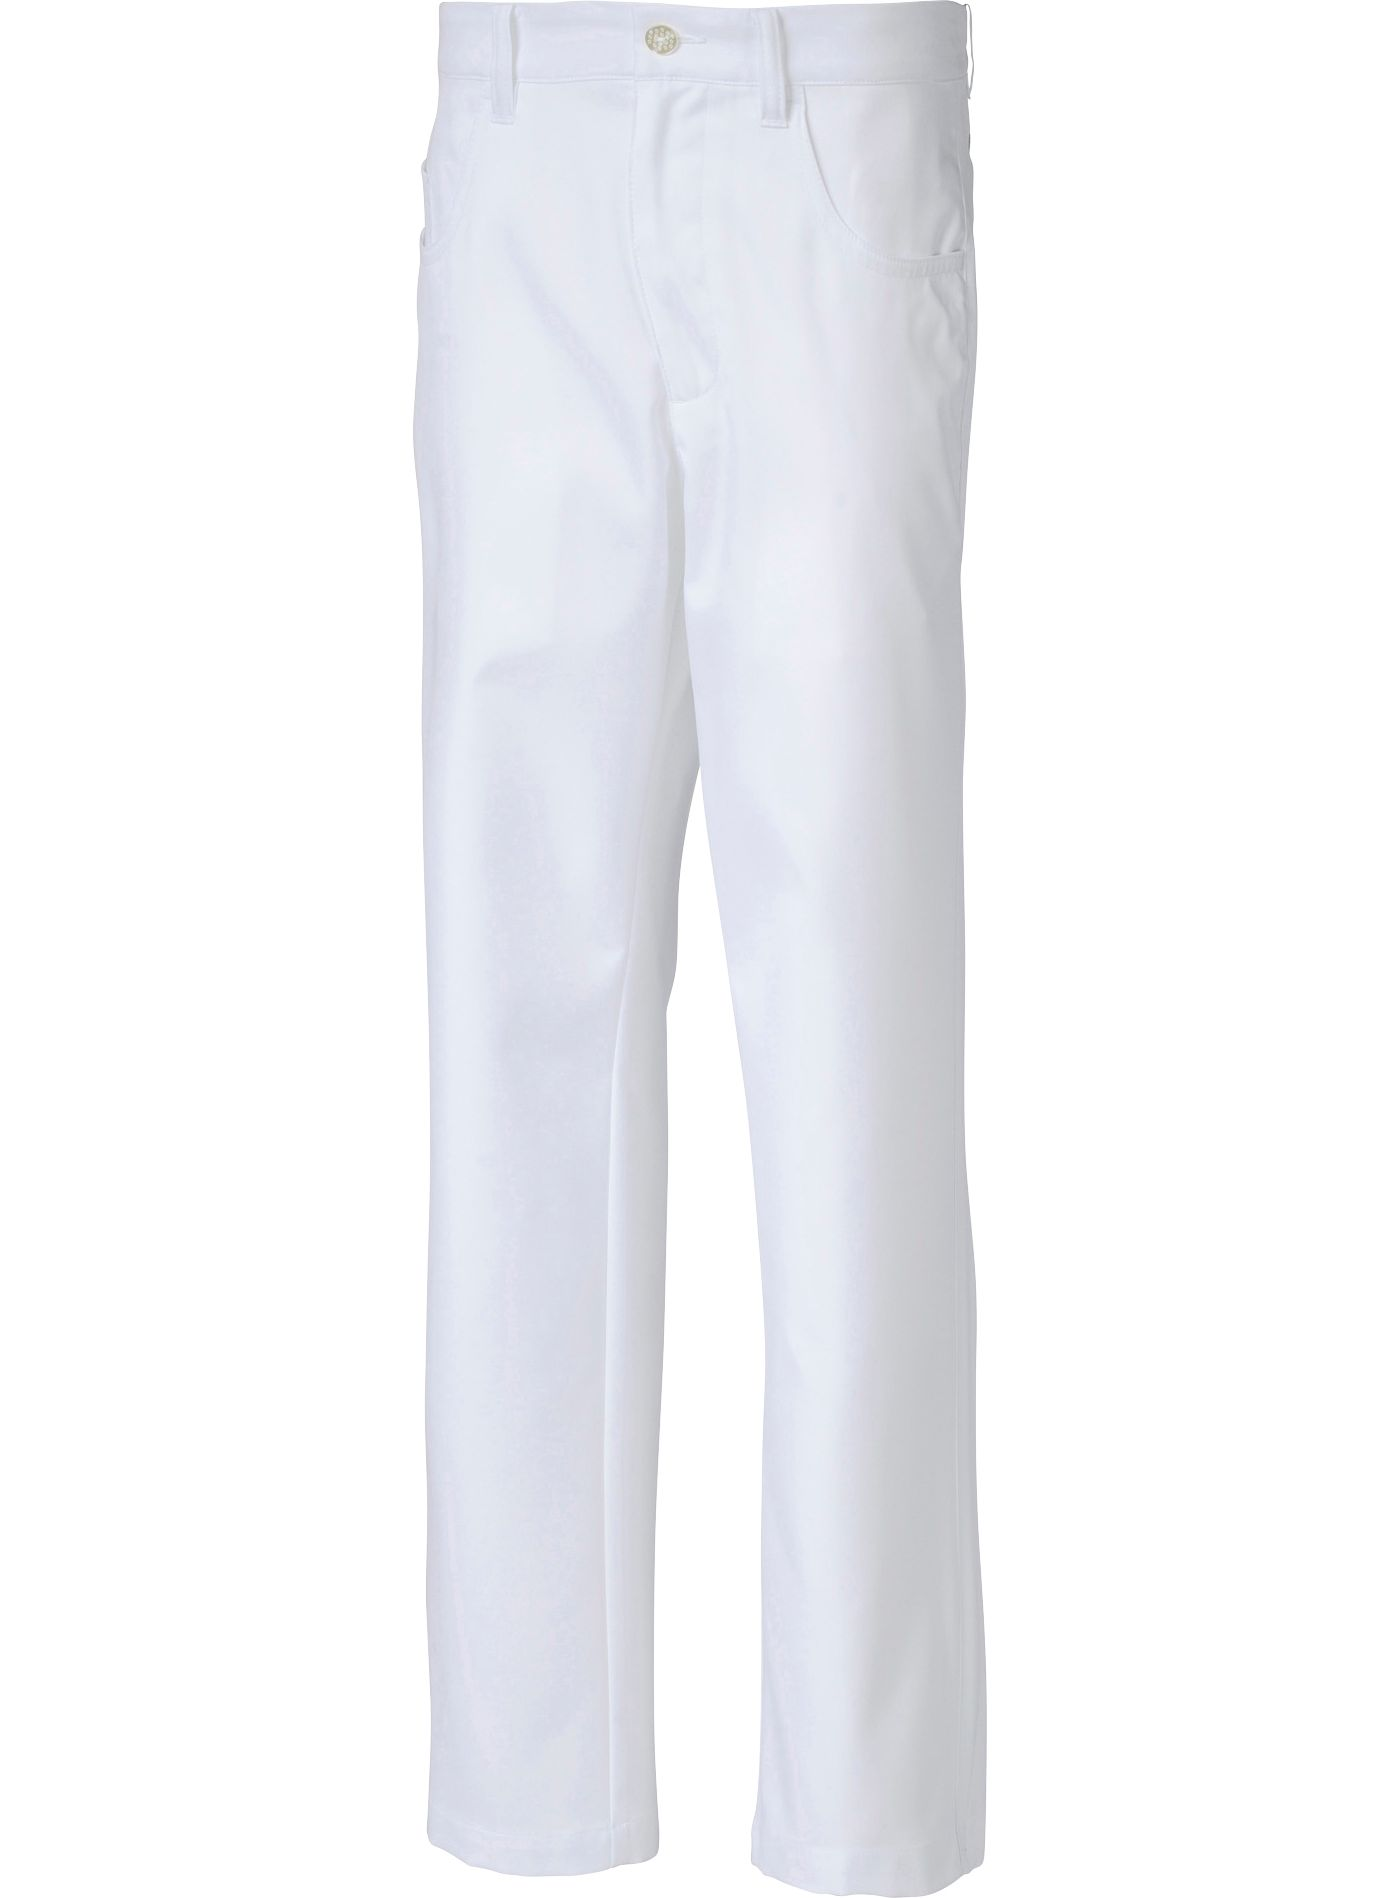 PUMA Boys' 5 Pocket Golf Pants